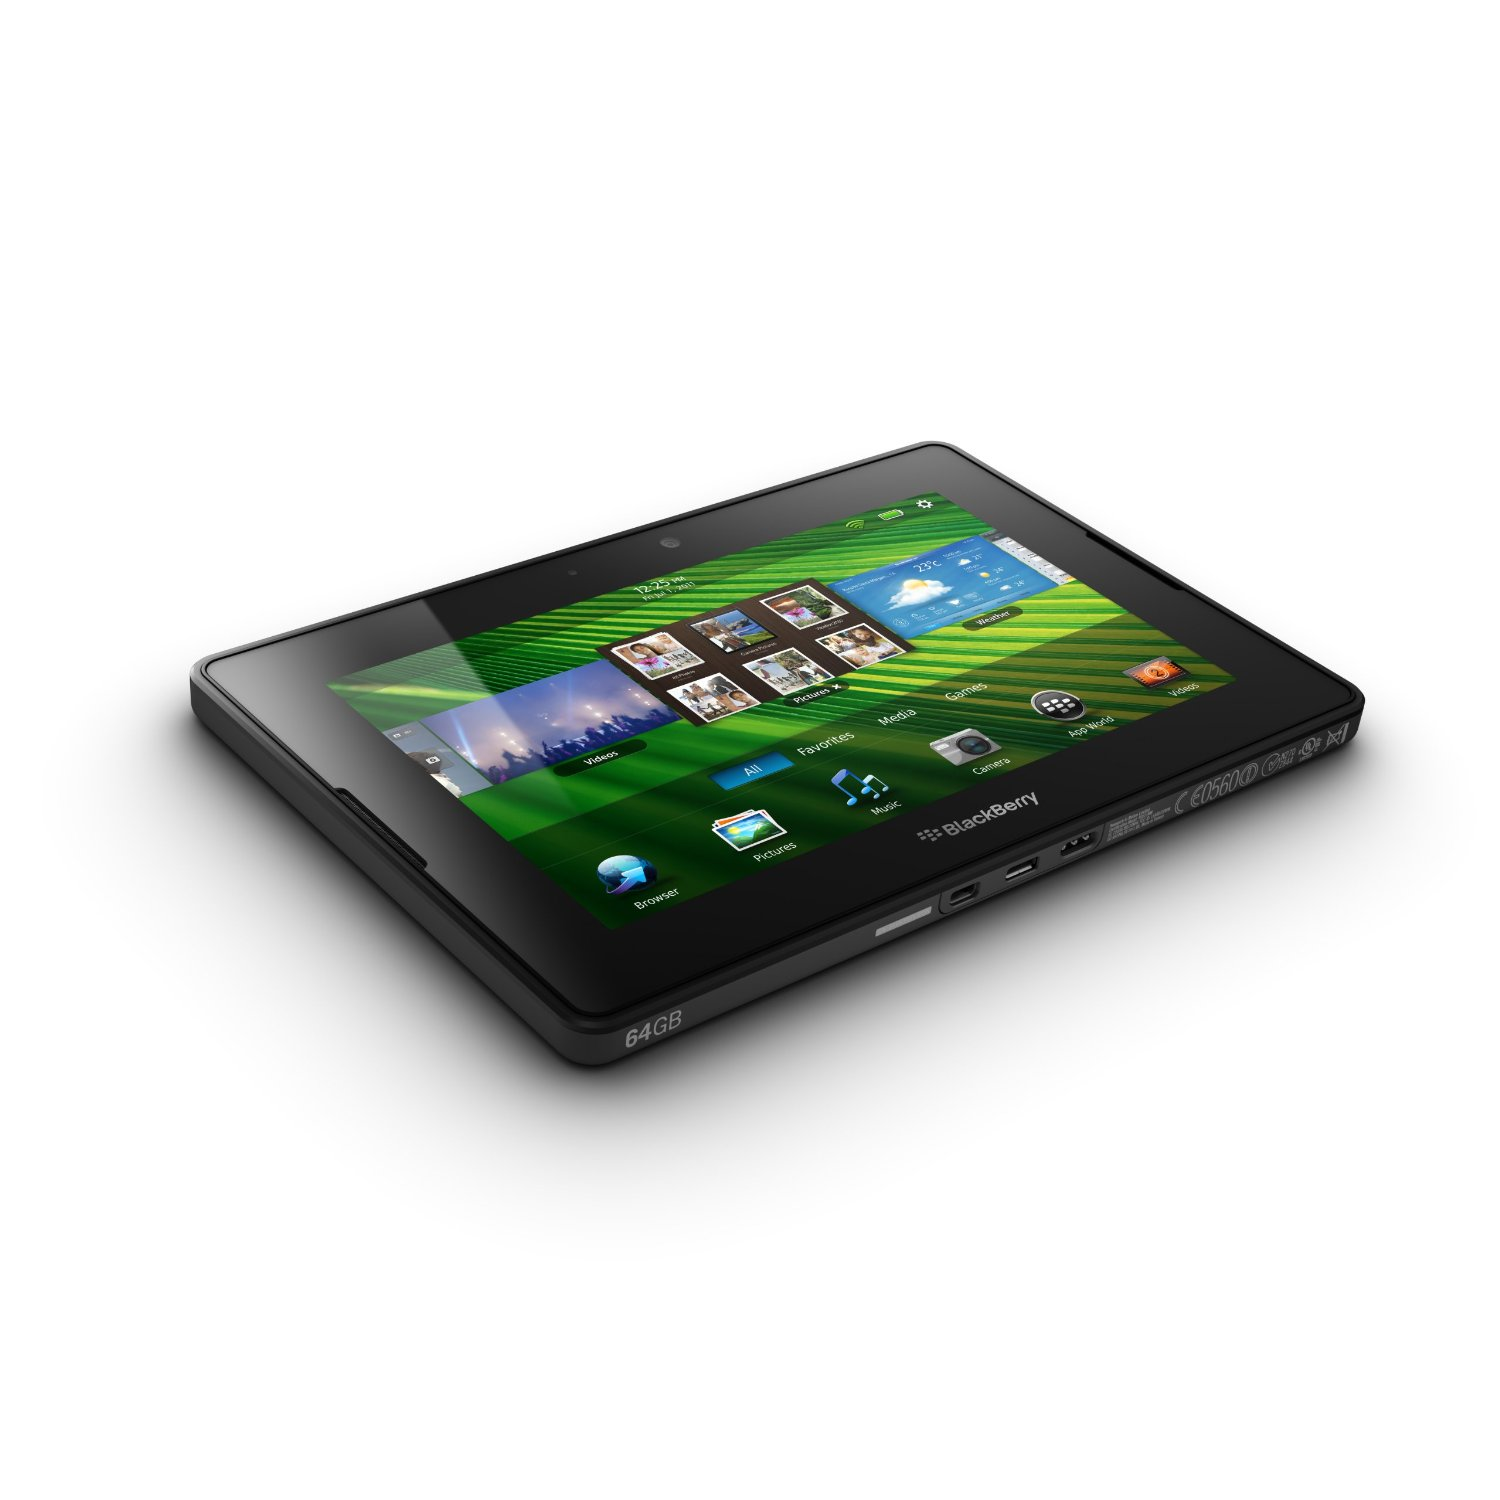 tablet blackberry playbook pc 7-inch 16gb review